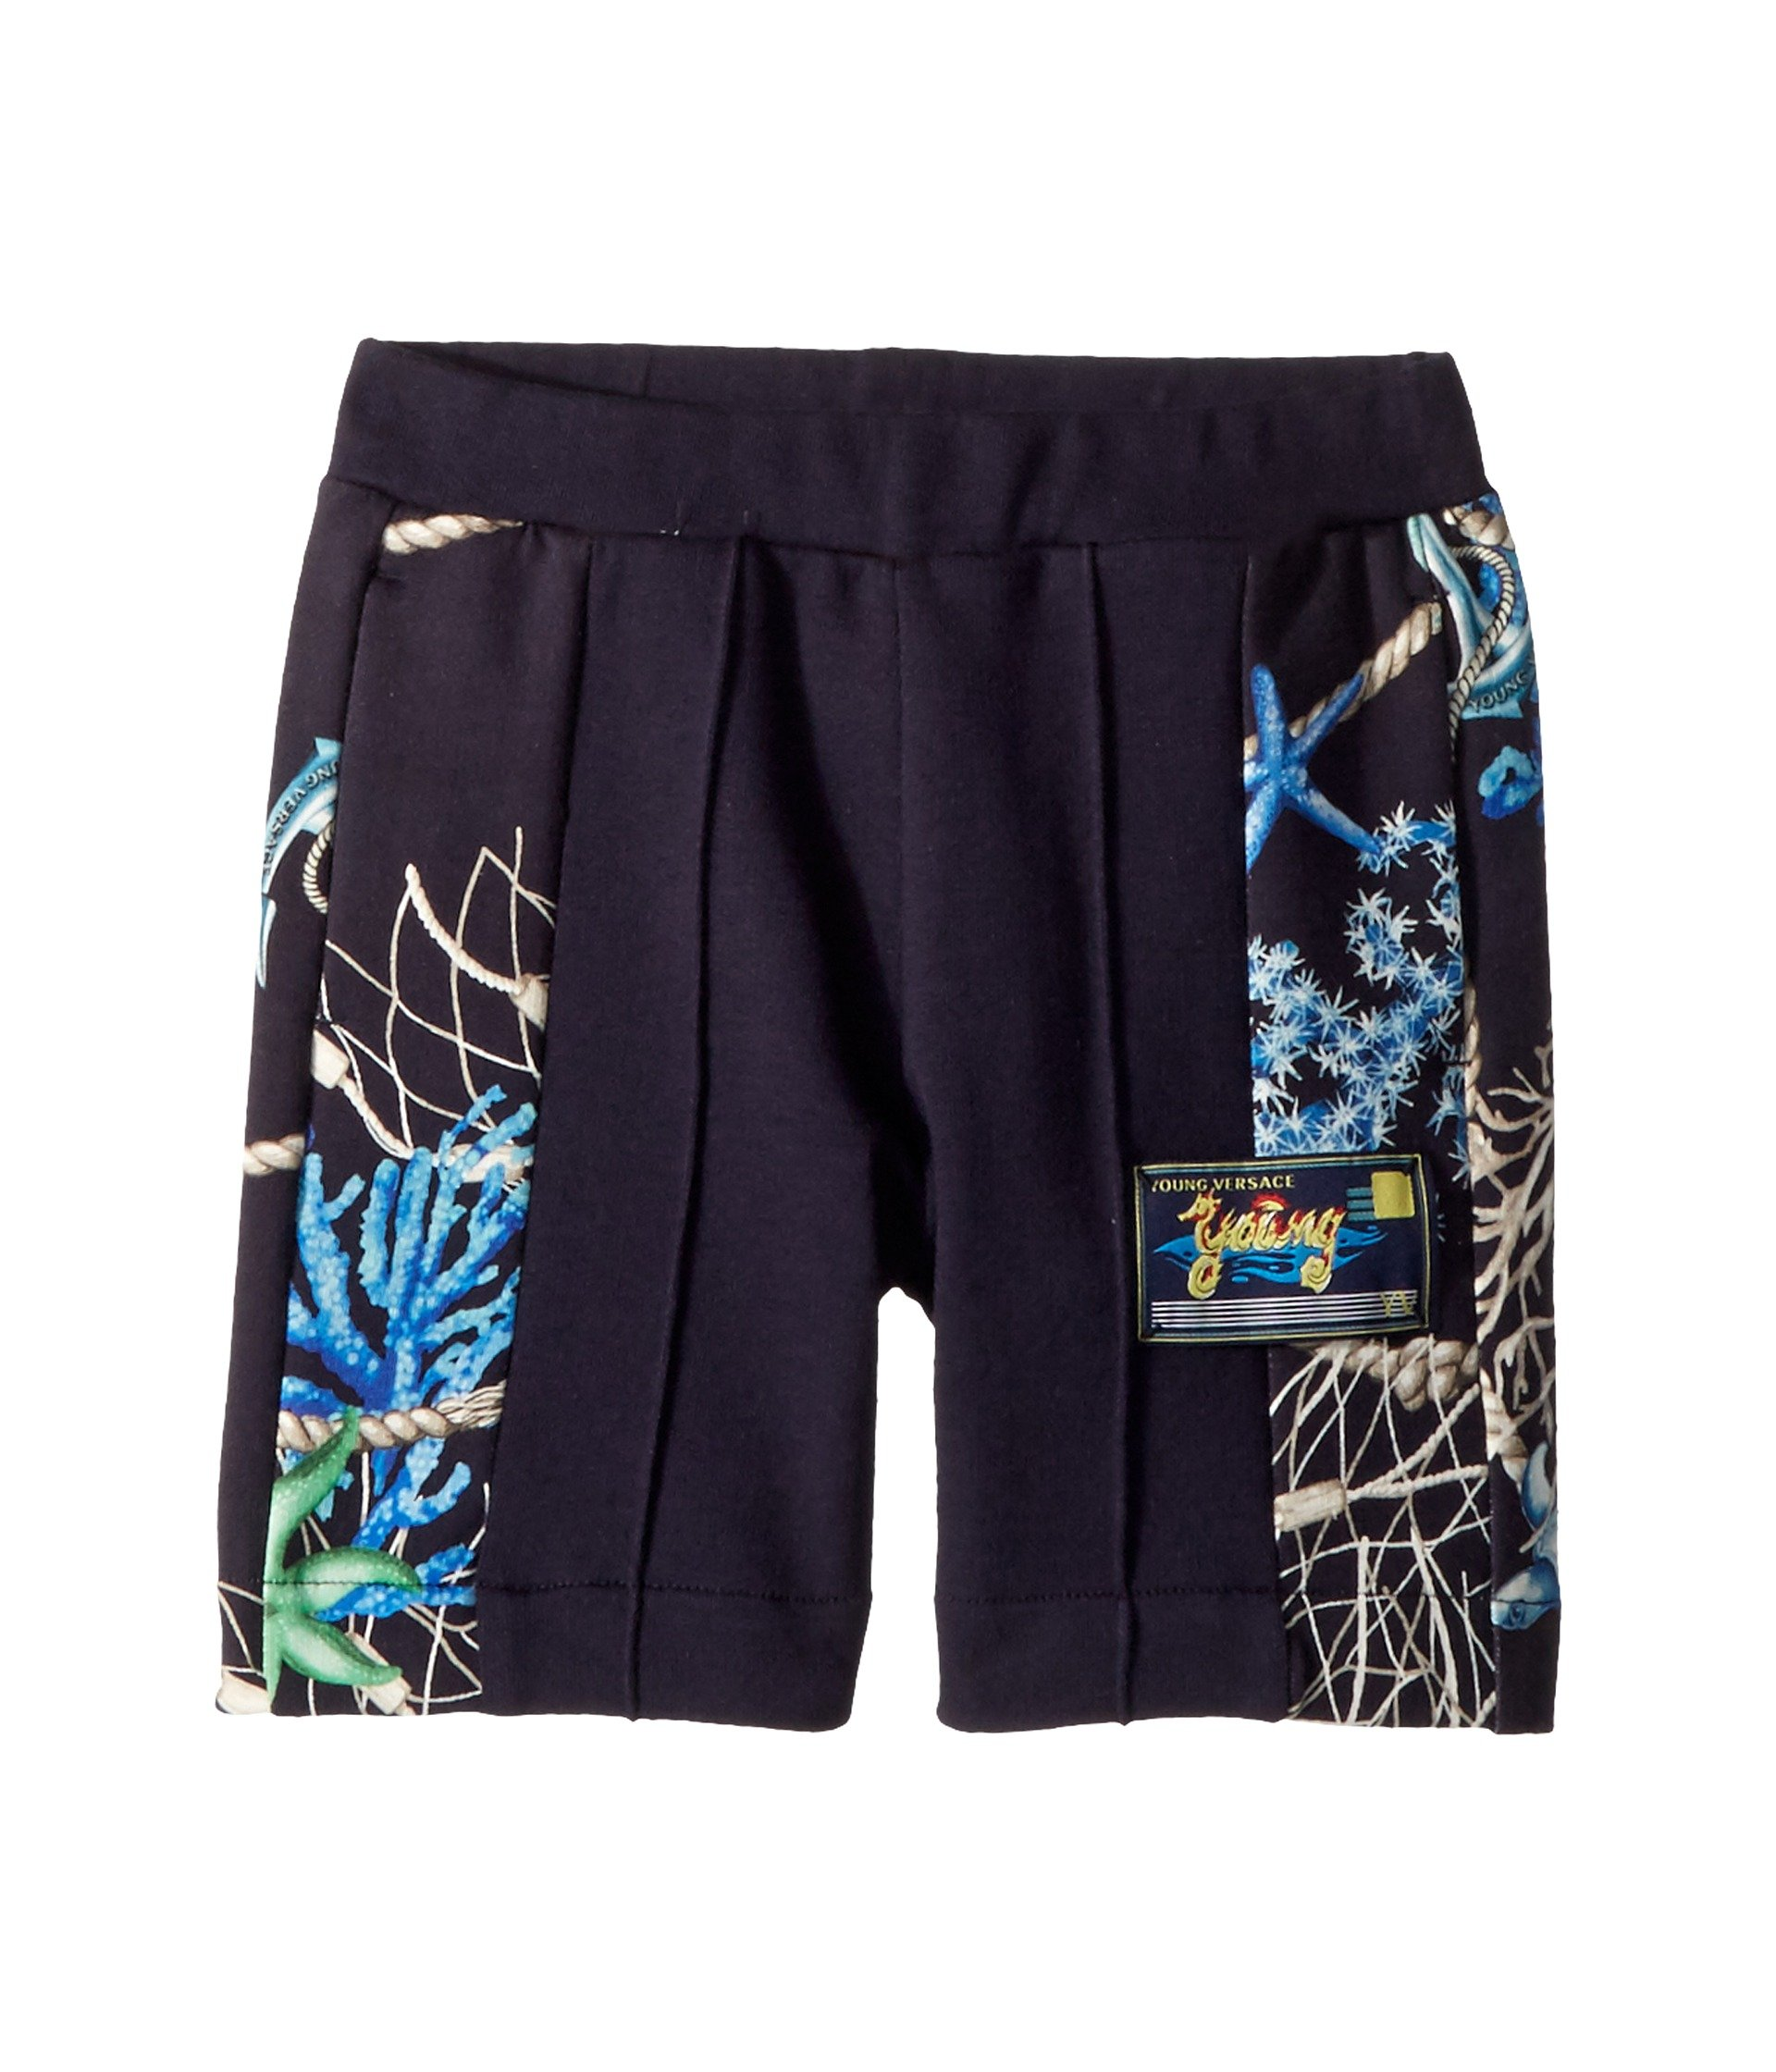 Versace Kids Baby Boy's Shorts w/Sea Shore Design on Sides (Toddler/Little Kids) Navy 4A